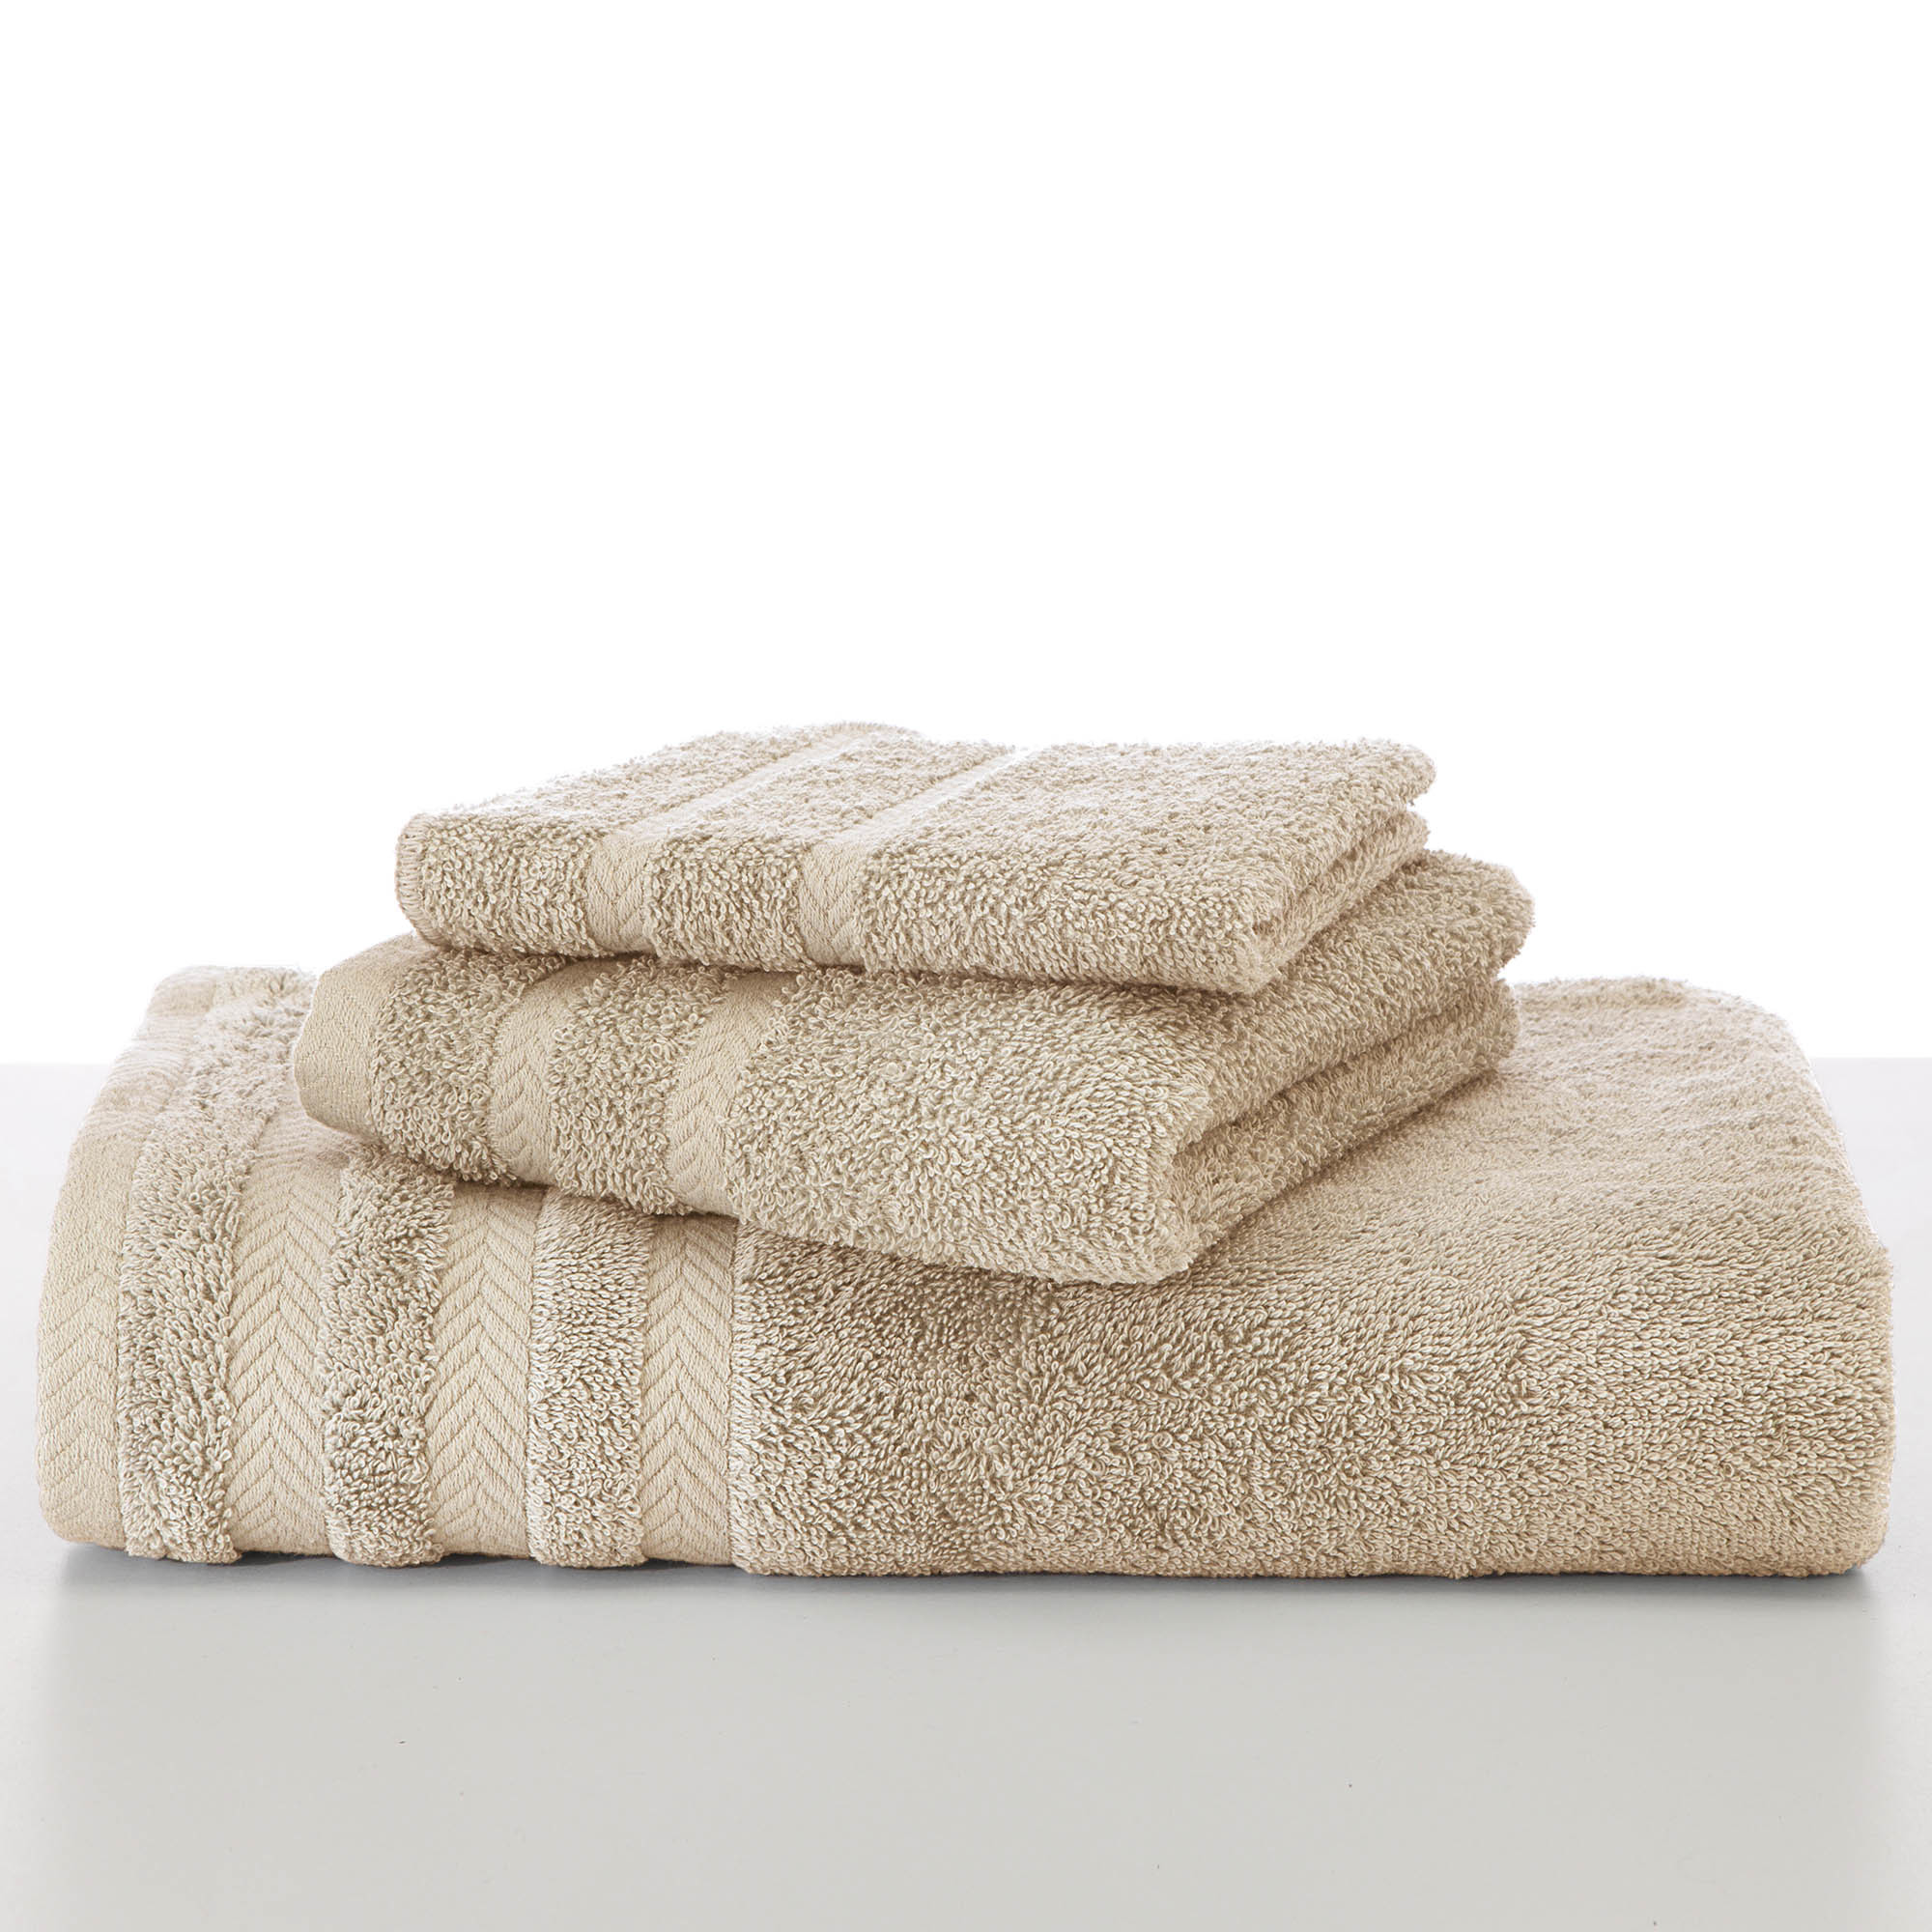 Egyptian Cotton with Dryfast Bath Towel Collectoin by WestPoint Home